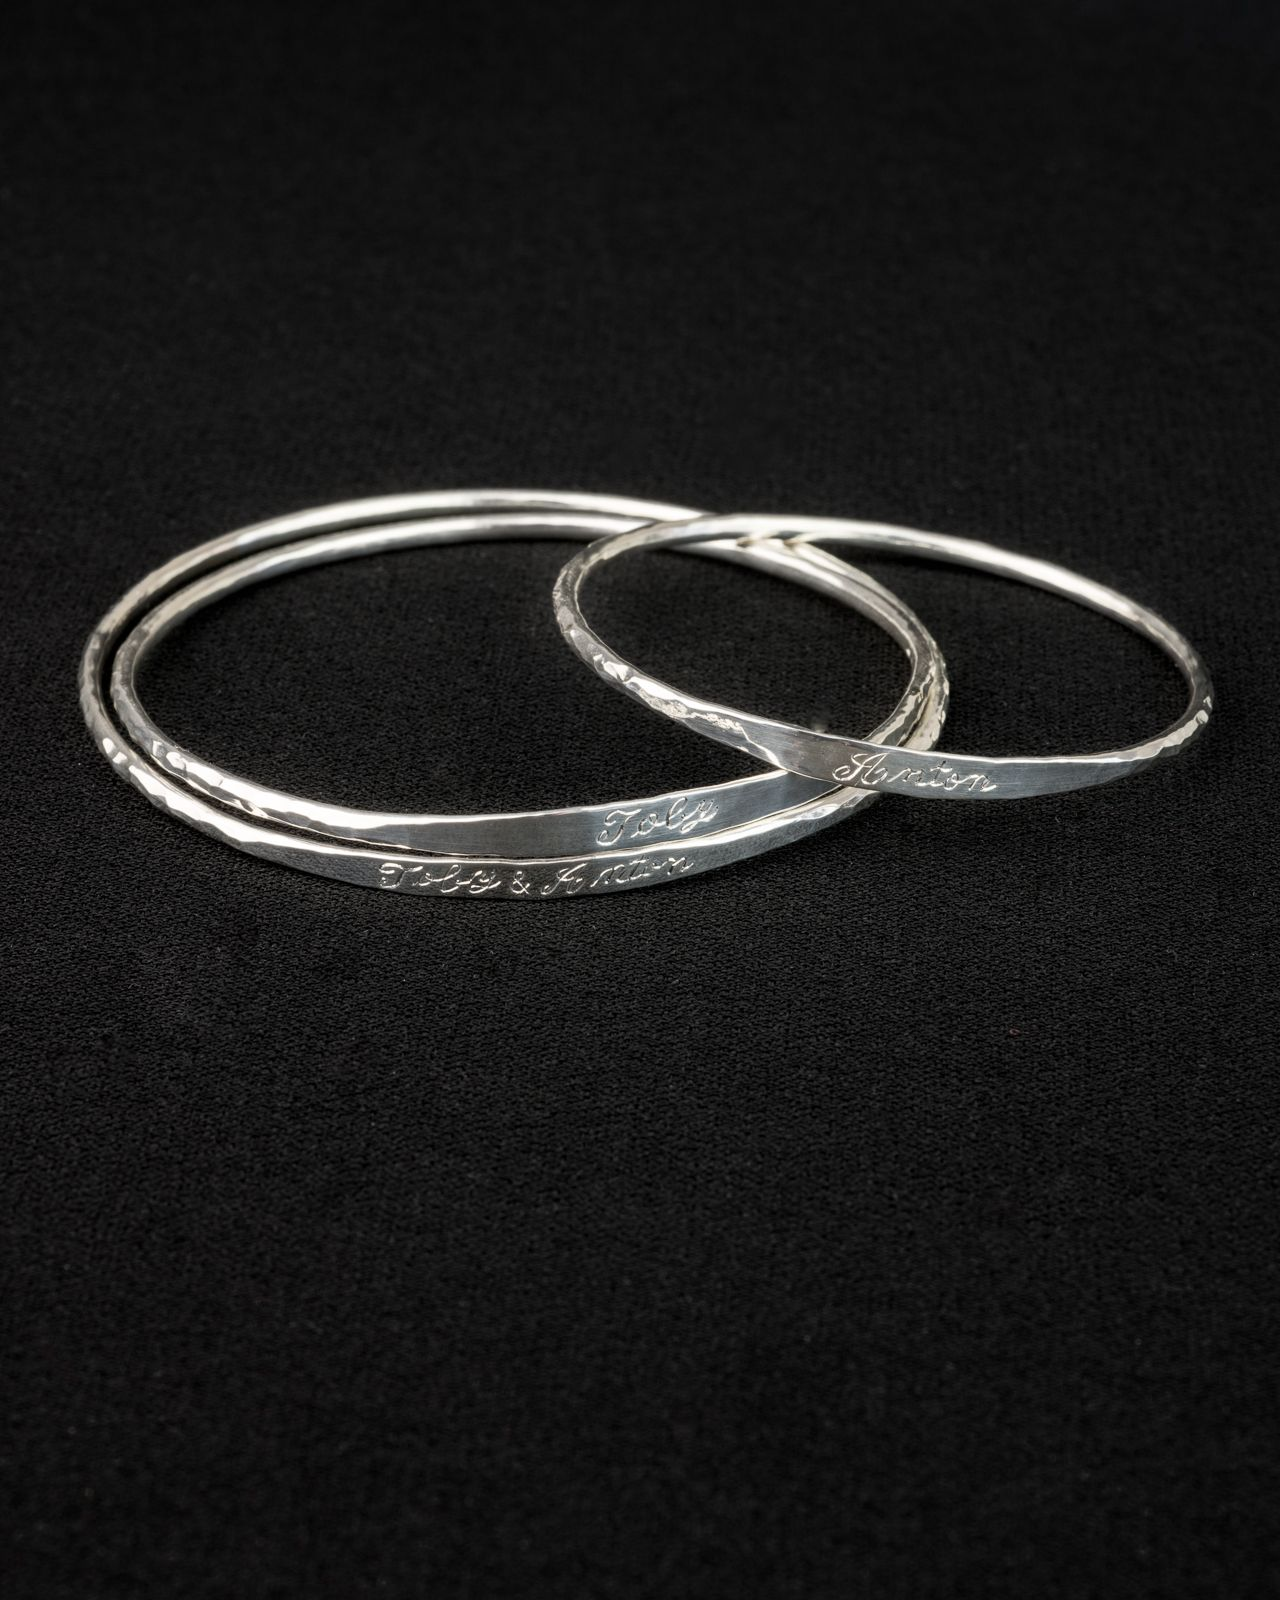 7833991ea6521 Bario Neal Keepsake Bangles reflect our desire to design objects of ...